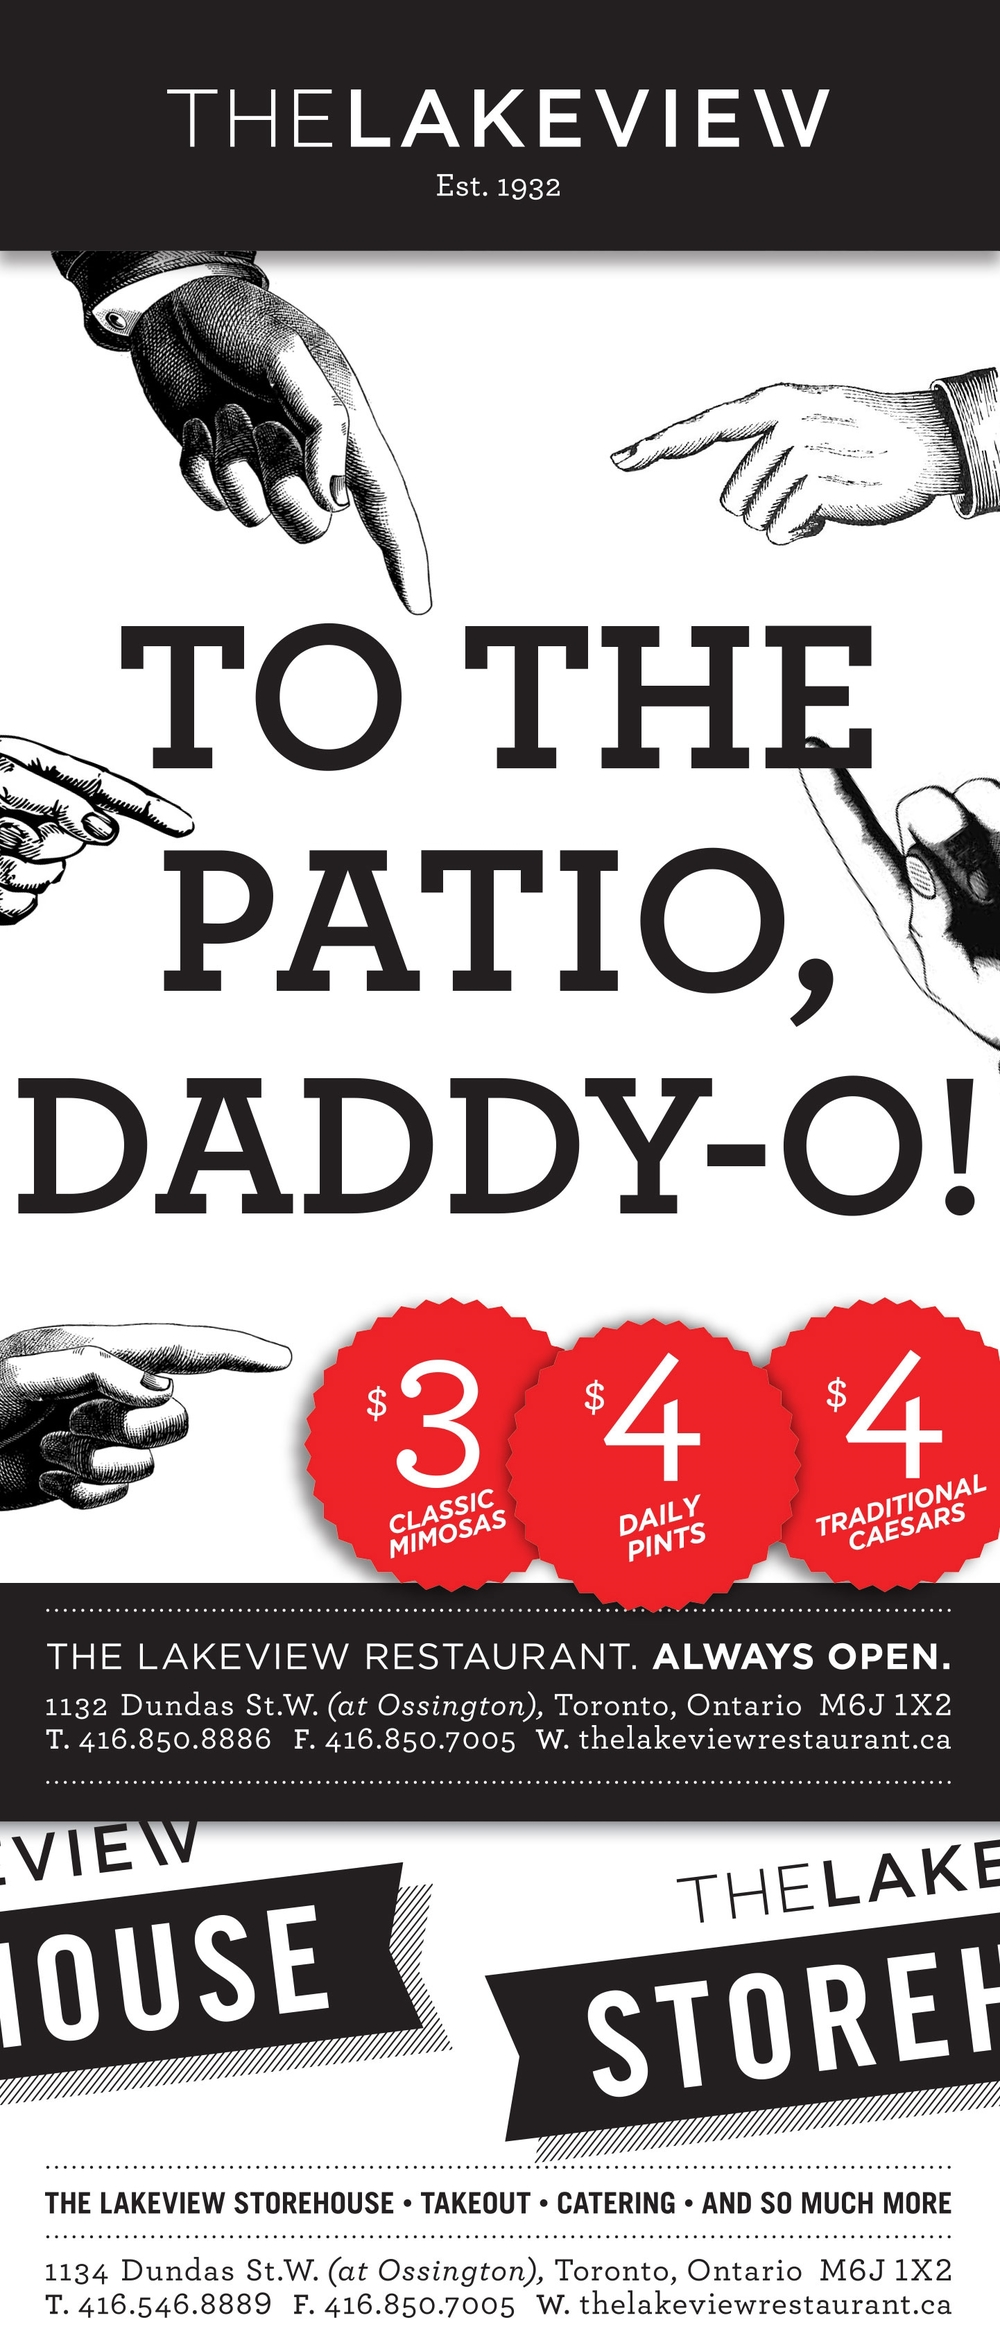 LV_Patio_Daddy-o_Ad_May13.jpg